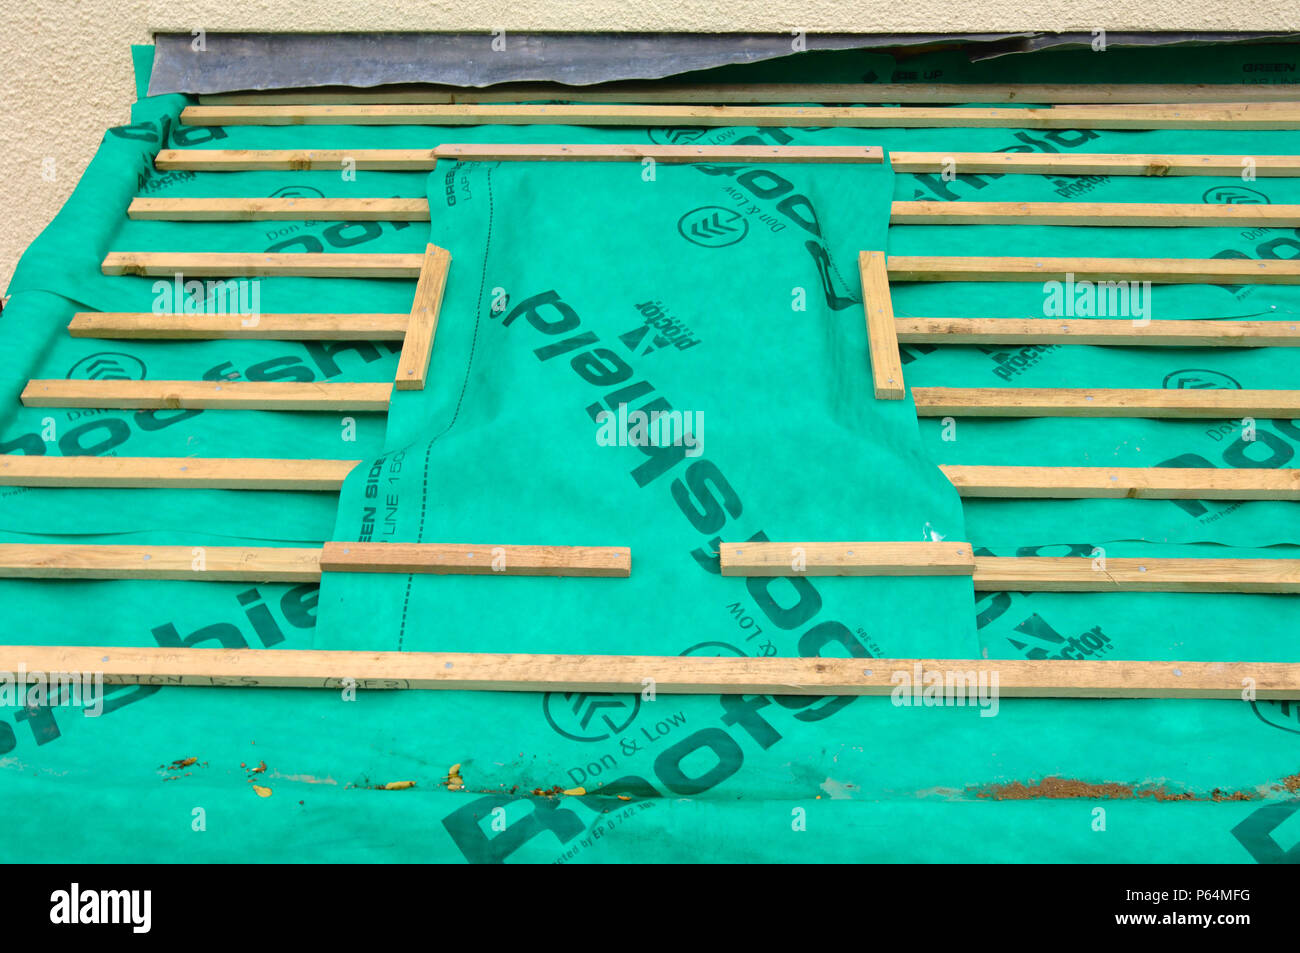 Roofing Felt Stock Photos & Roofing Felt Stock Images - Alamy